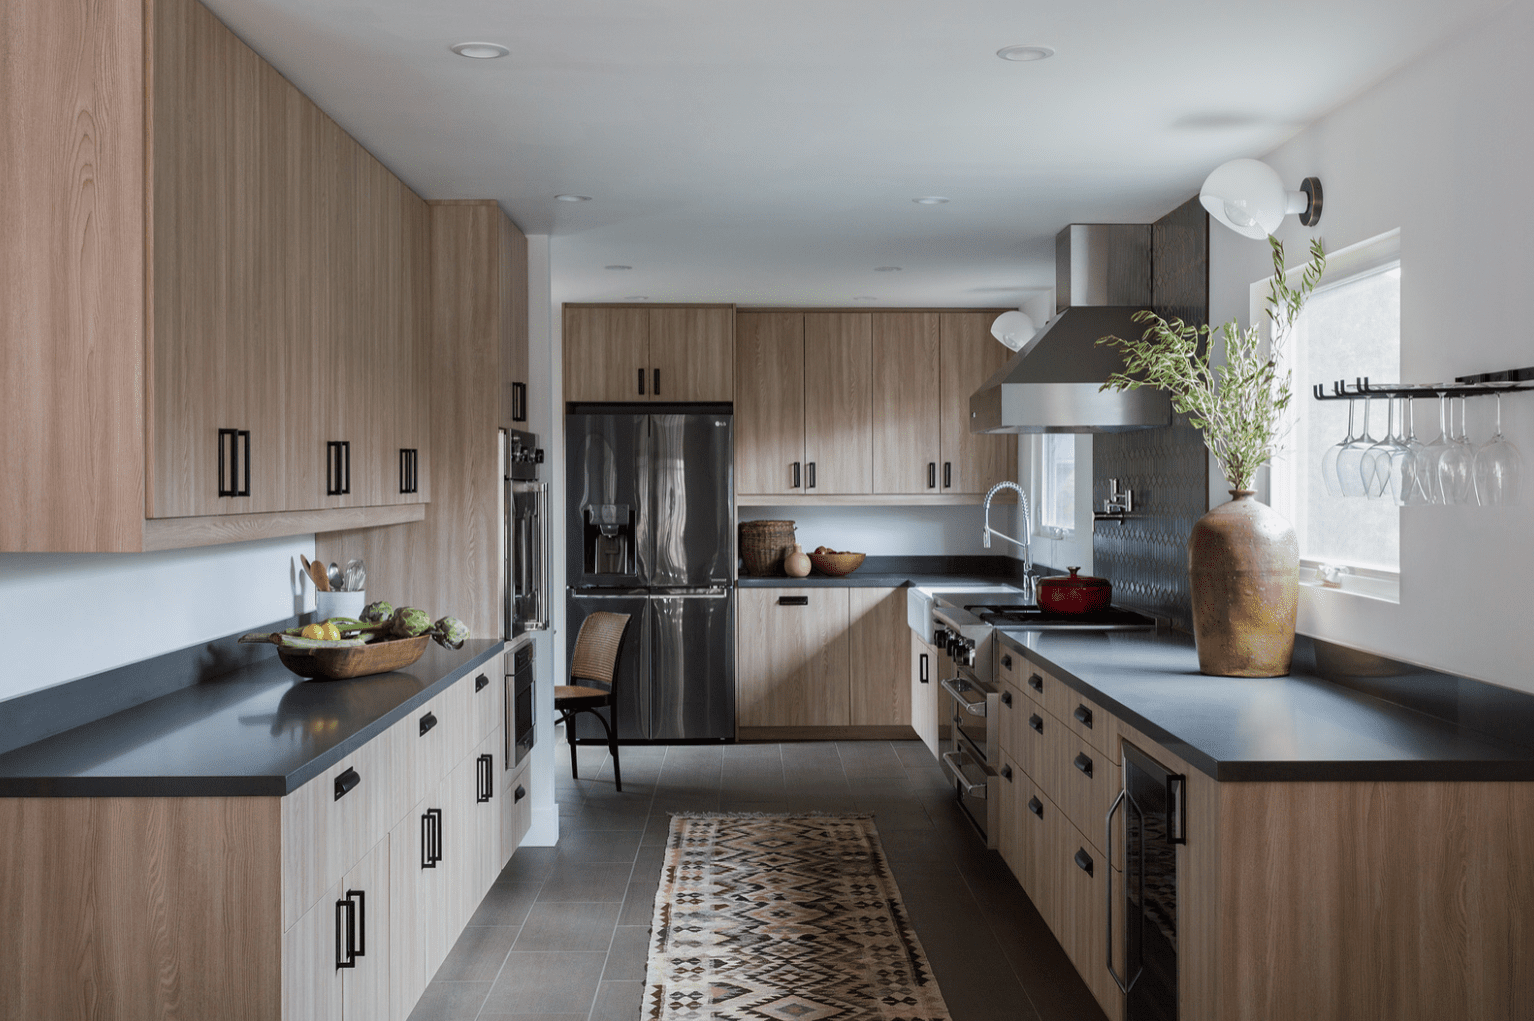 A large kitchen lined with wood cabinets